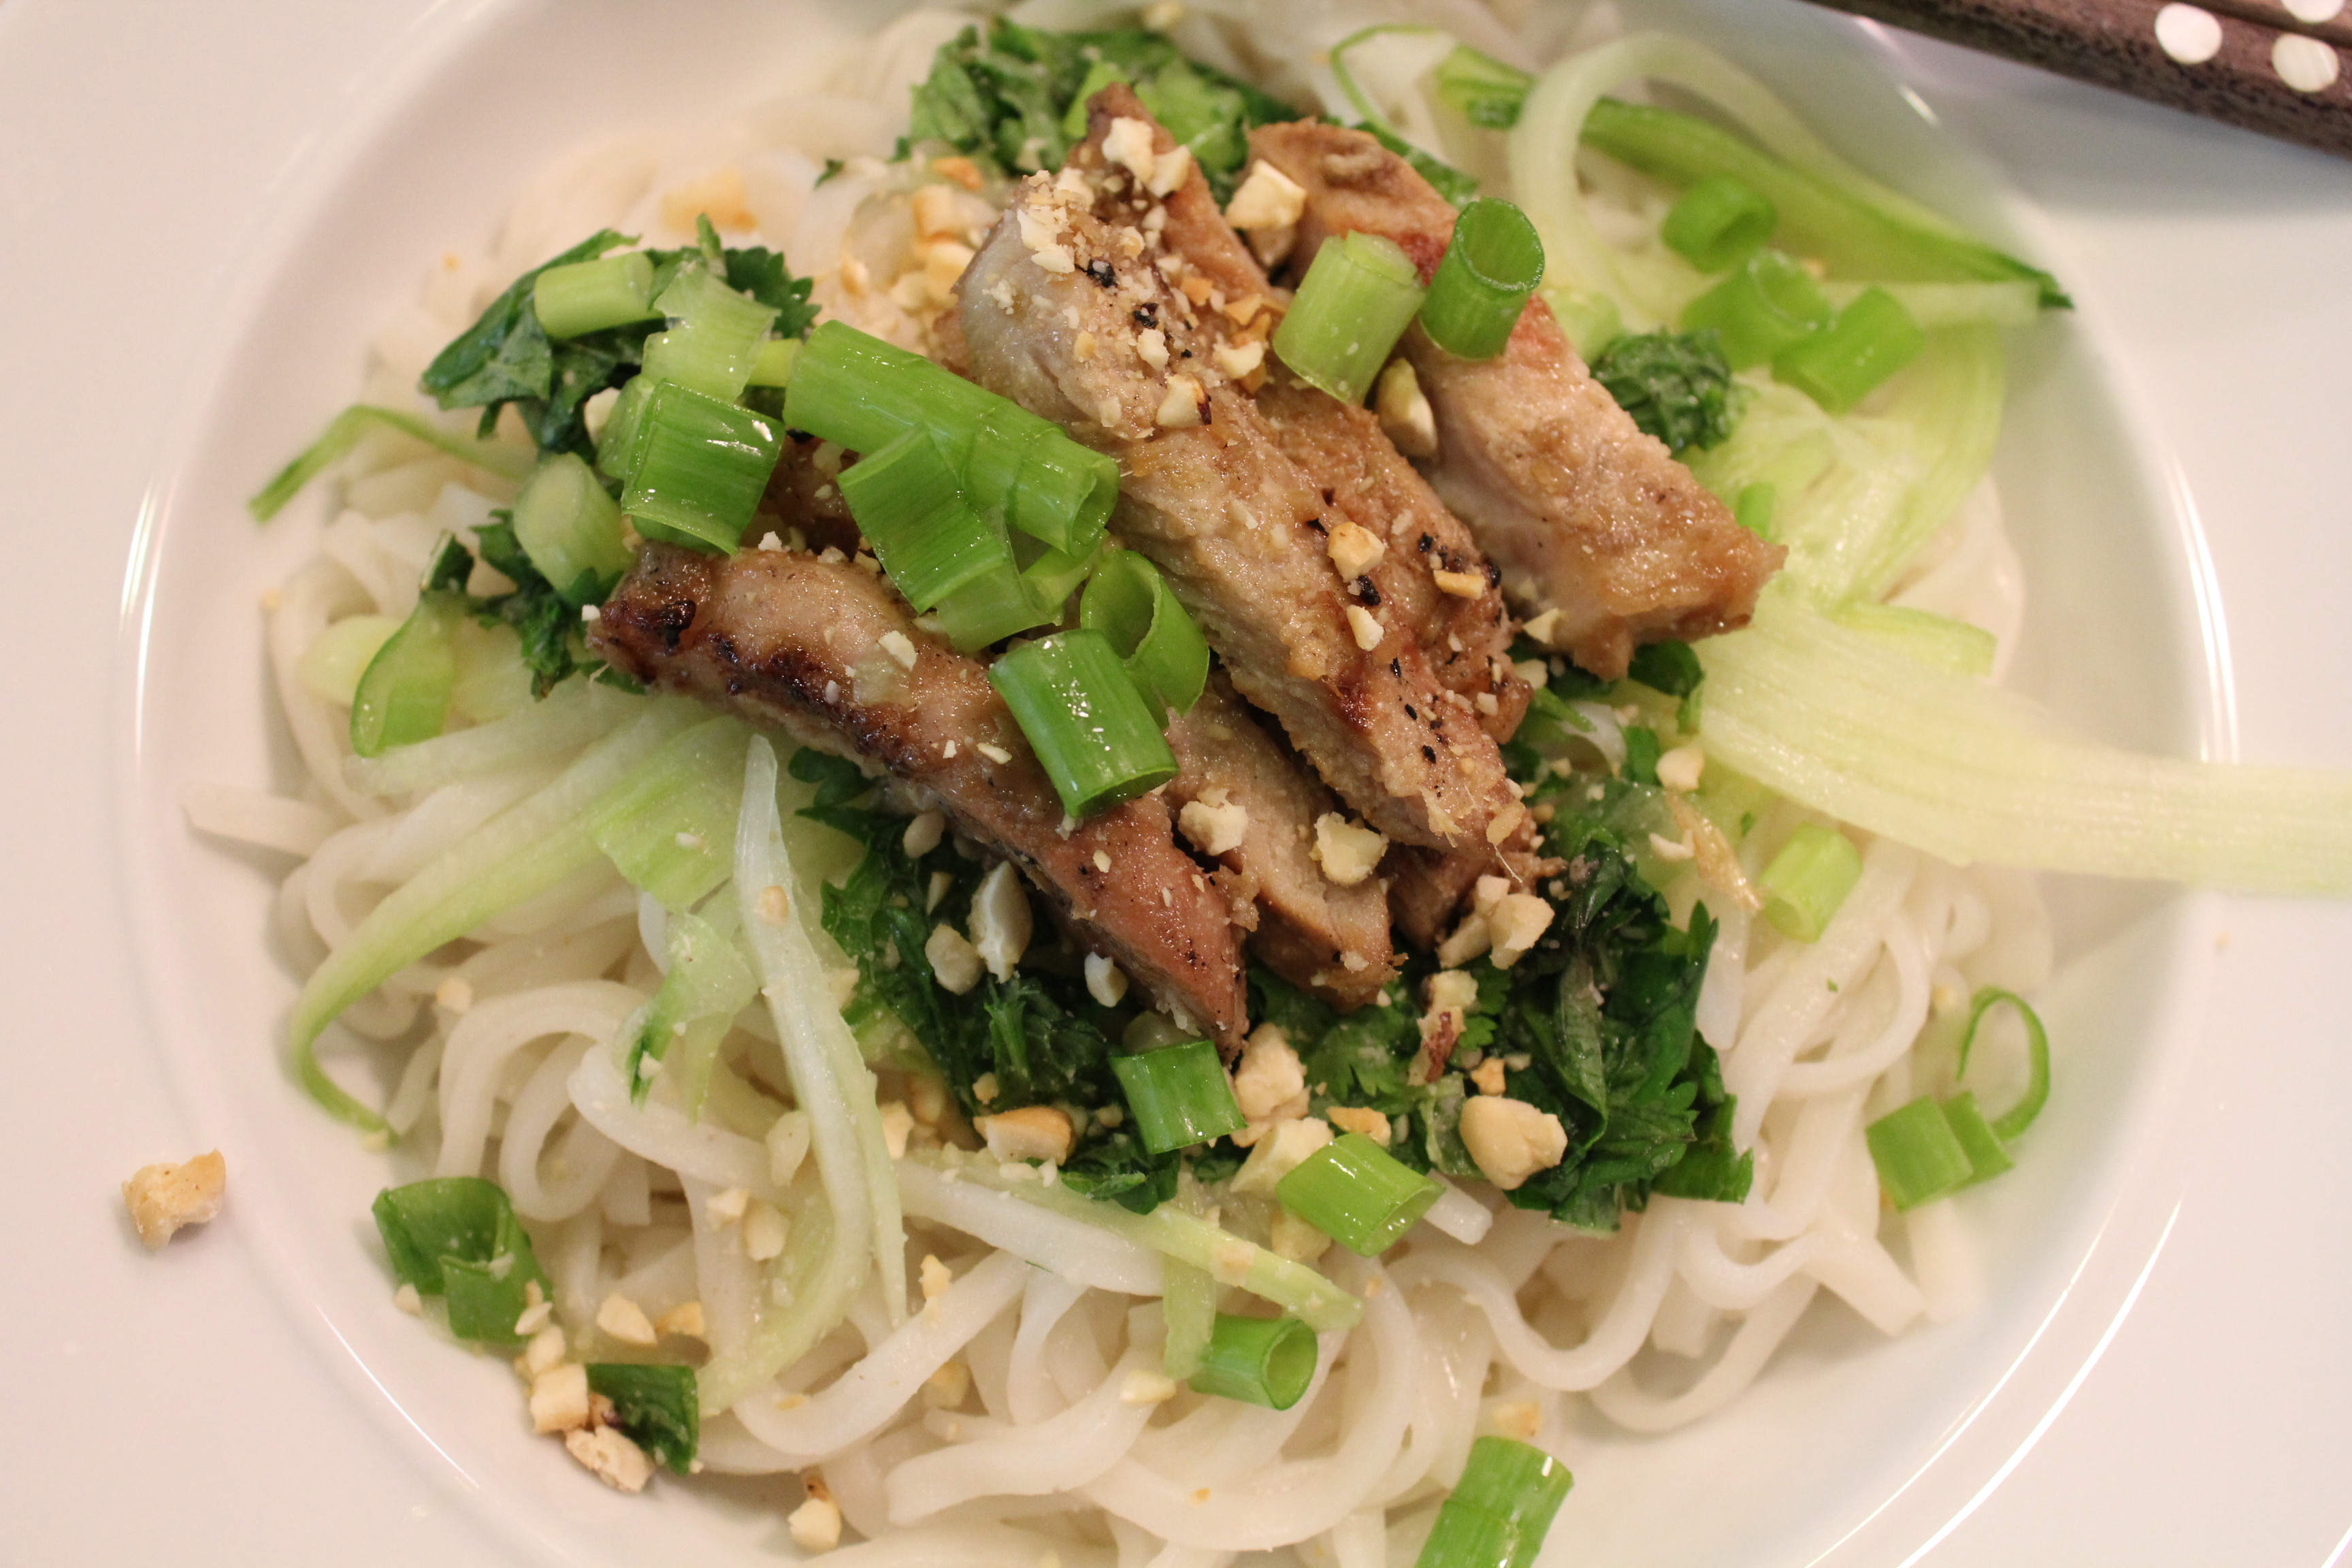 Vermicelli Rice Noodles  Lemongrass Barbecued Pork with Brown Rice Vermicelli